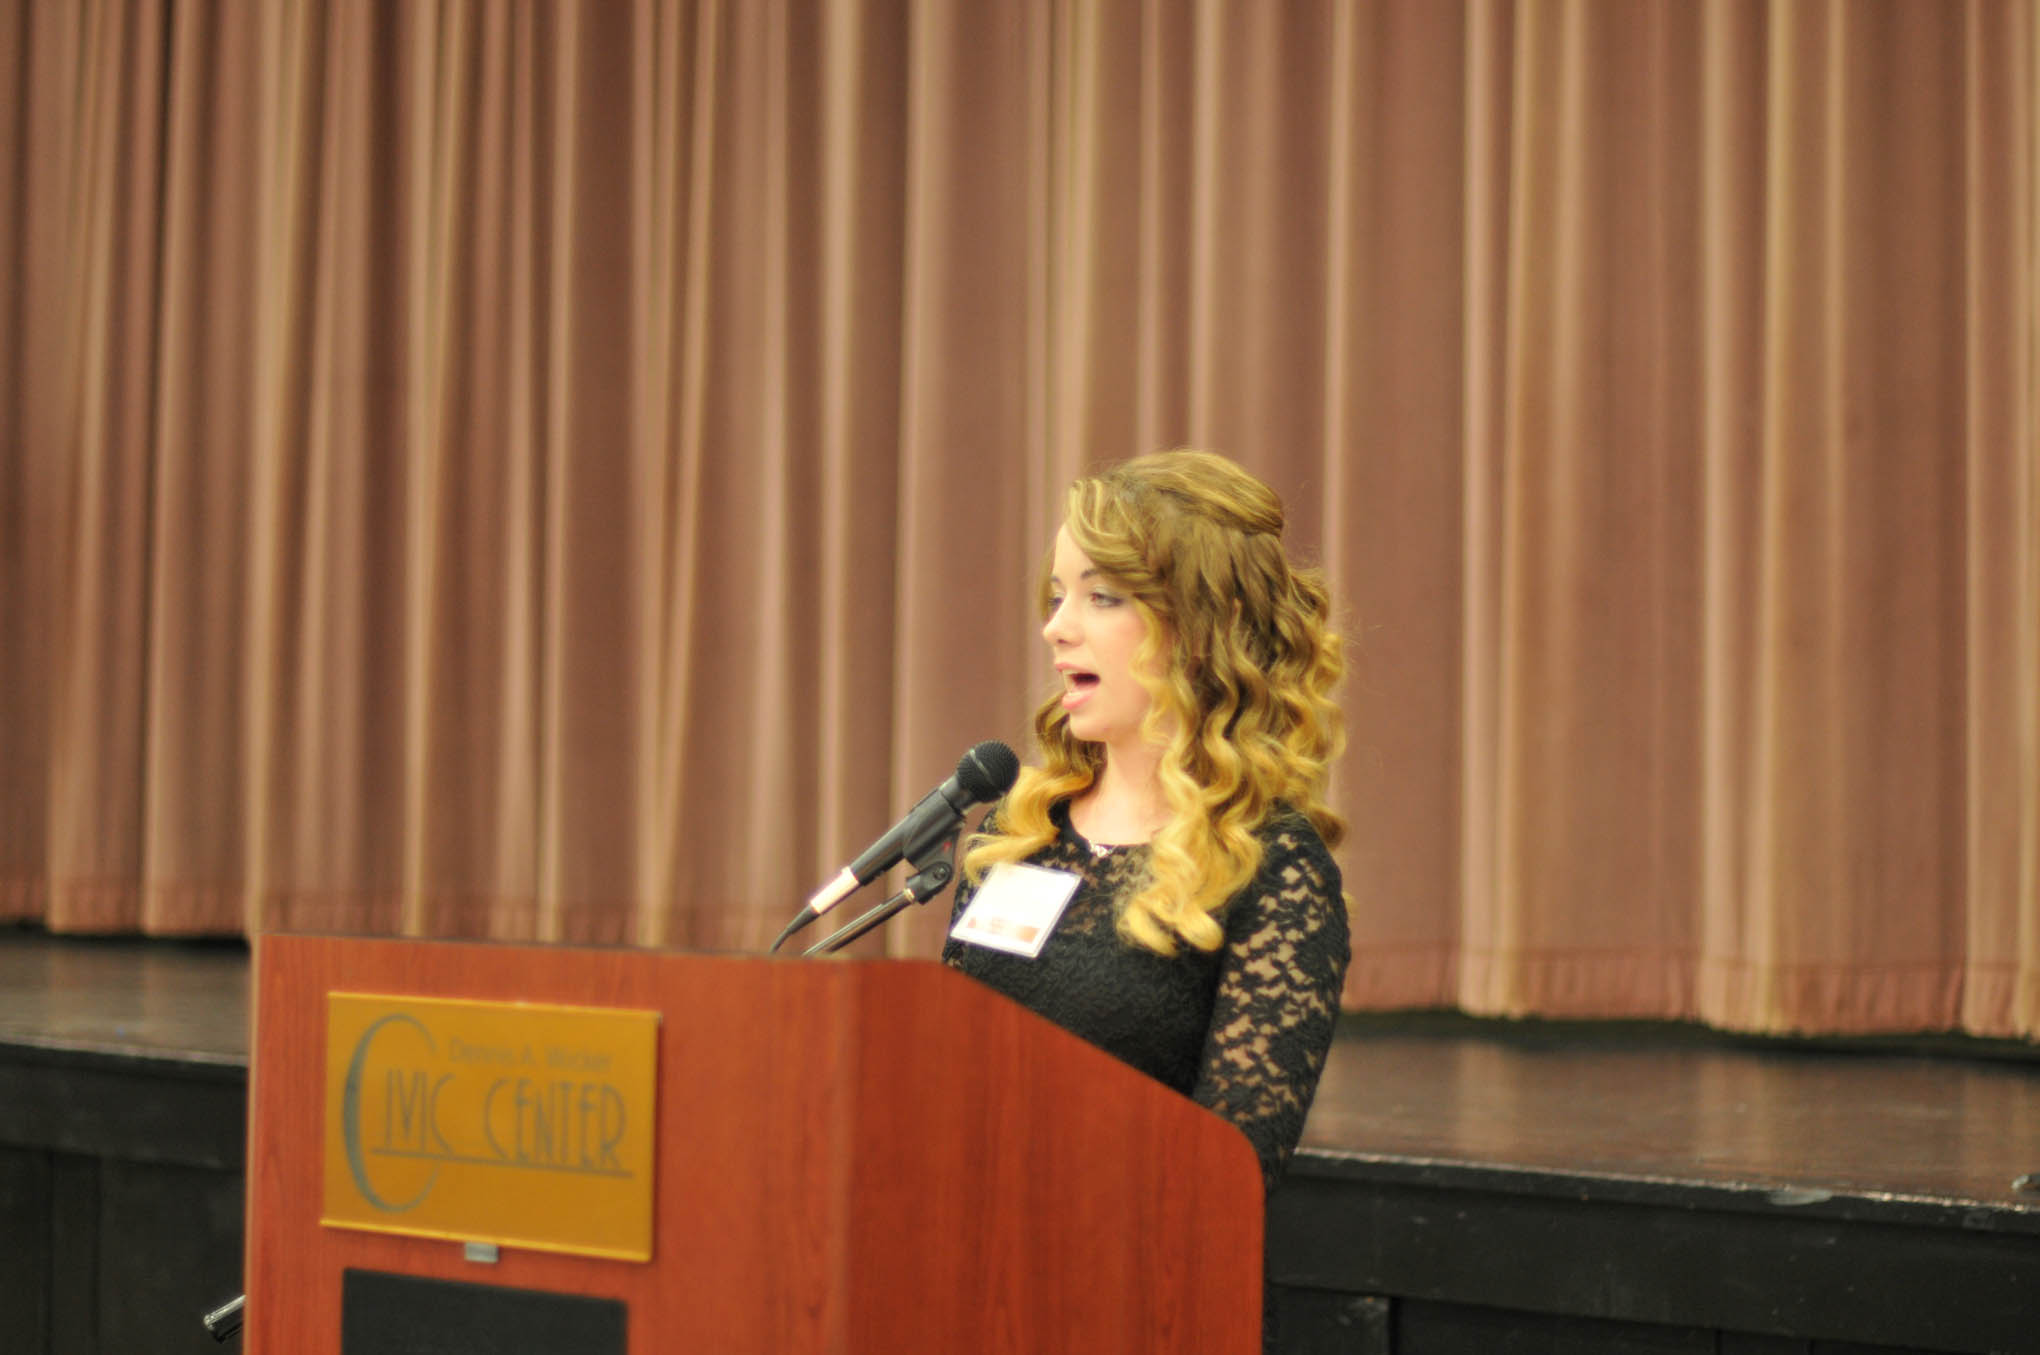 Click to enlarge,  Karley Mitchell of Moncure, a second-year Veterinary Medical Technology student, was the student speaker at Central Carolina Community College's Scholarship Luncheon on Wednesday, Nov. 16, at the Dennis A. Wicker Civic Center.